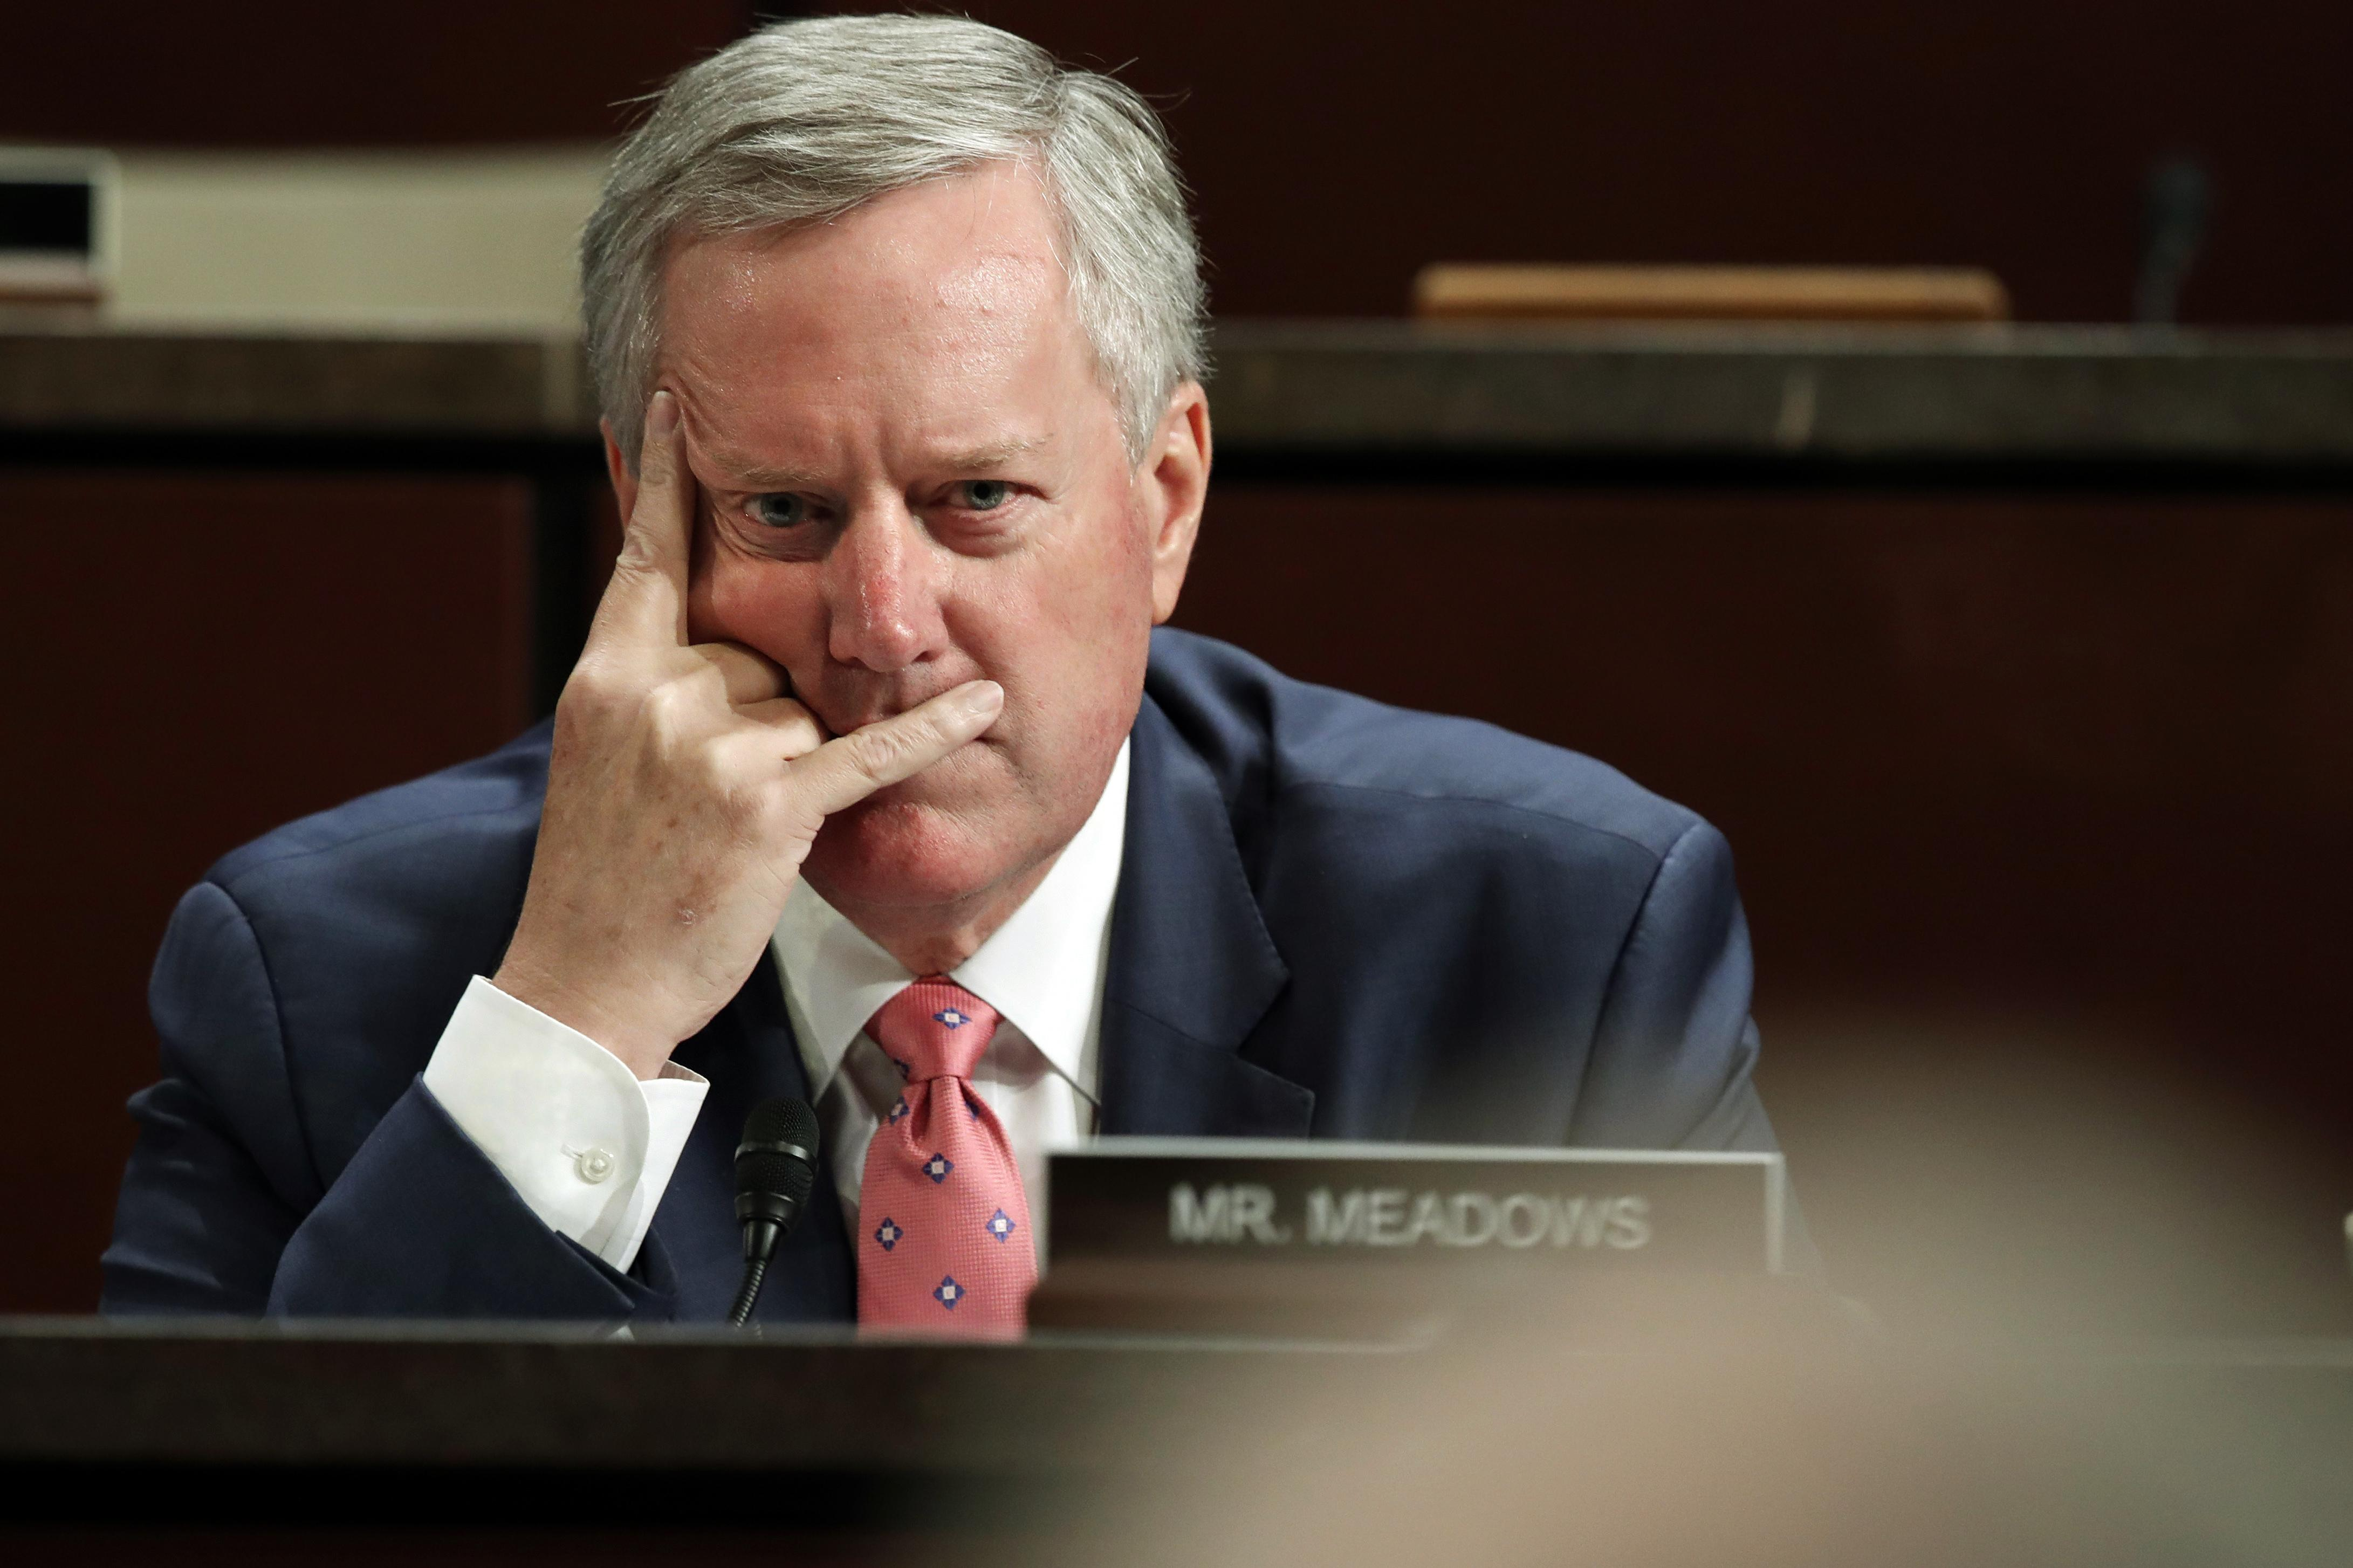 Mueller 'better be prepared' for House hearing, Meadows says